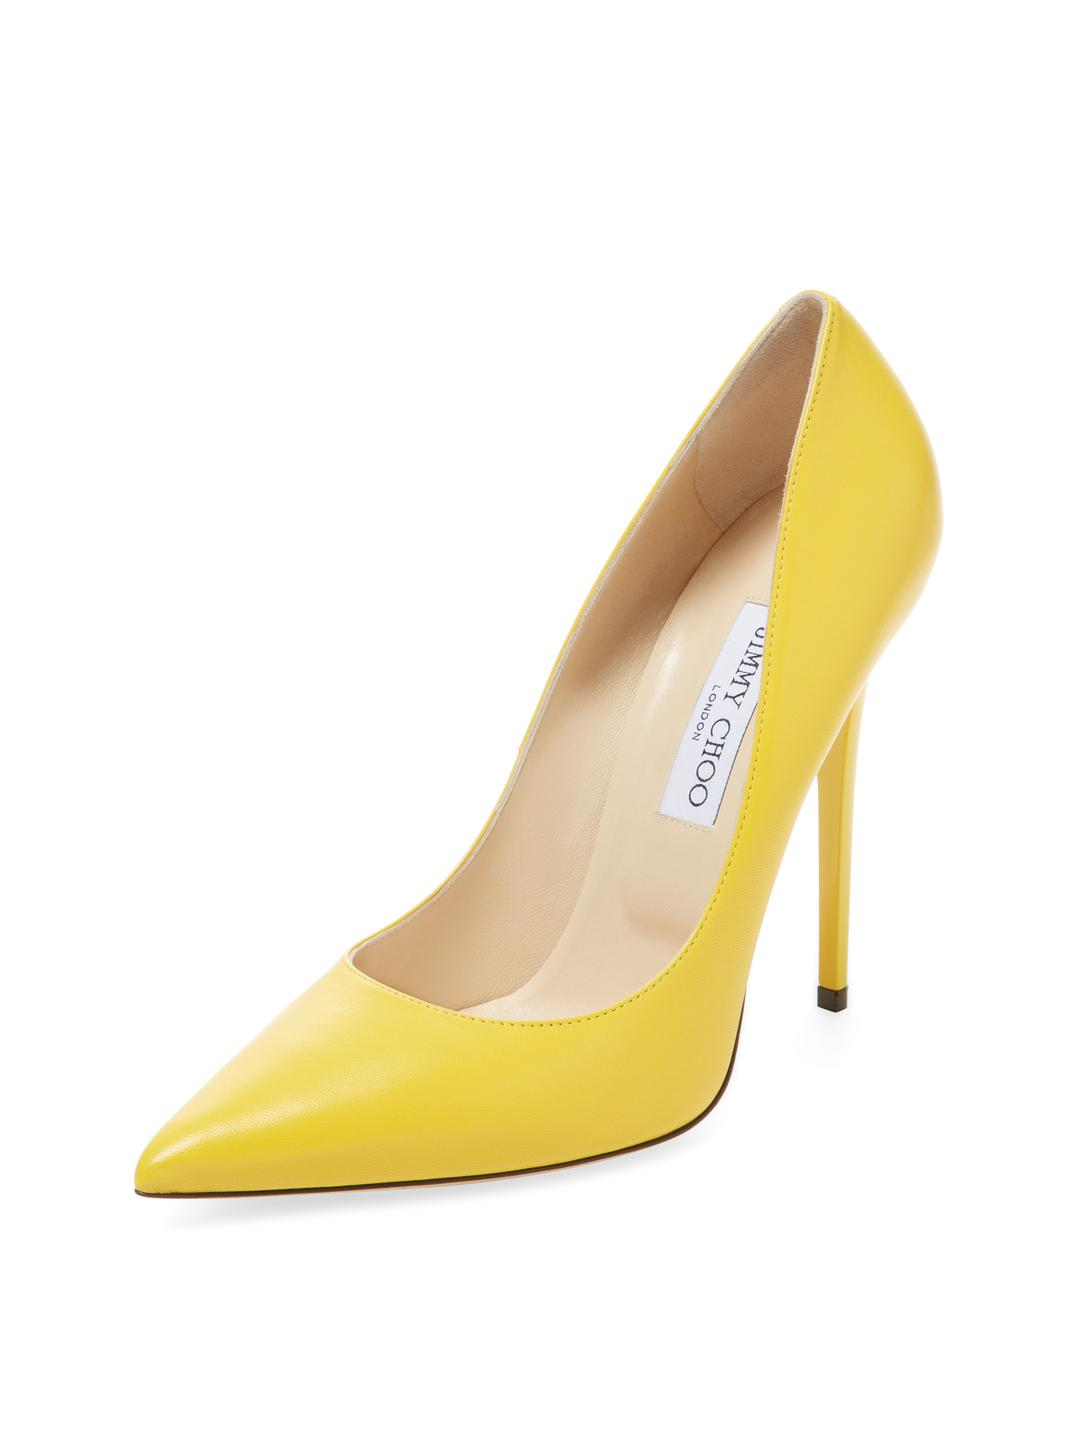 6dcc91c298a3 Gallery. Previously sold at  Gilt · Women s Pointed Toe Pumps Women s Yellow  Heels Women s Jimmy Choo Anouk ...